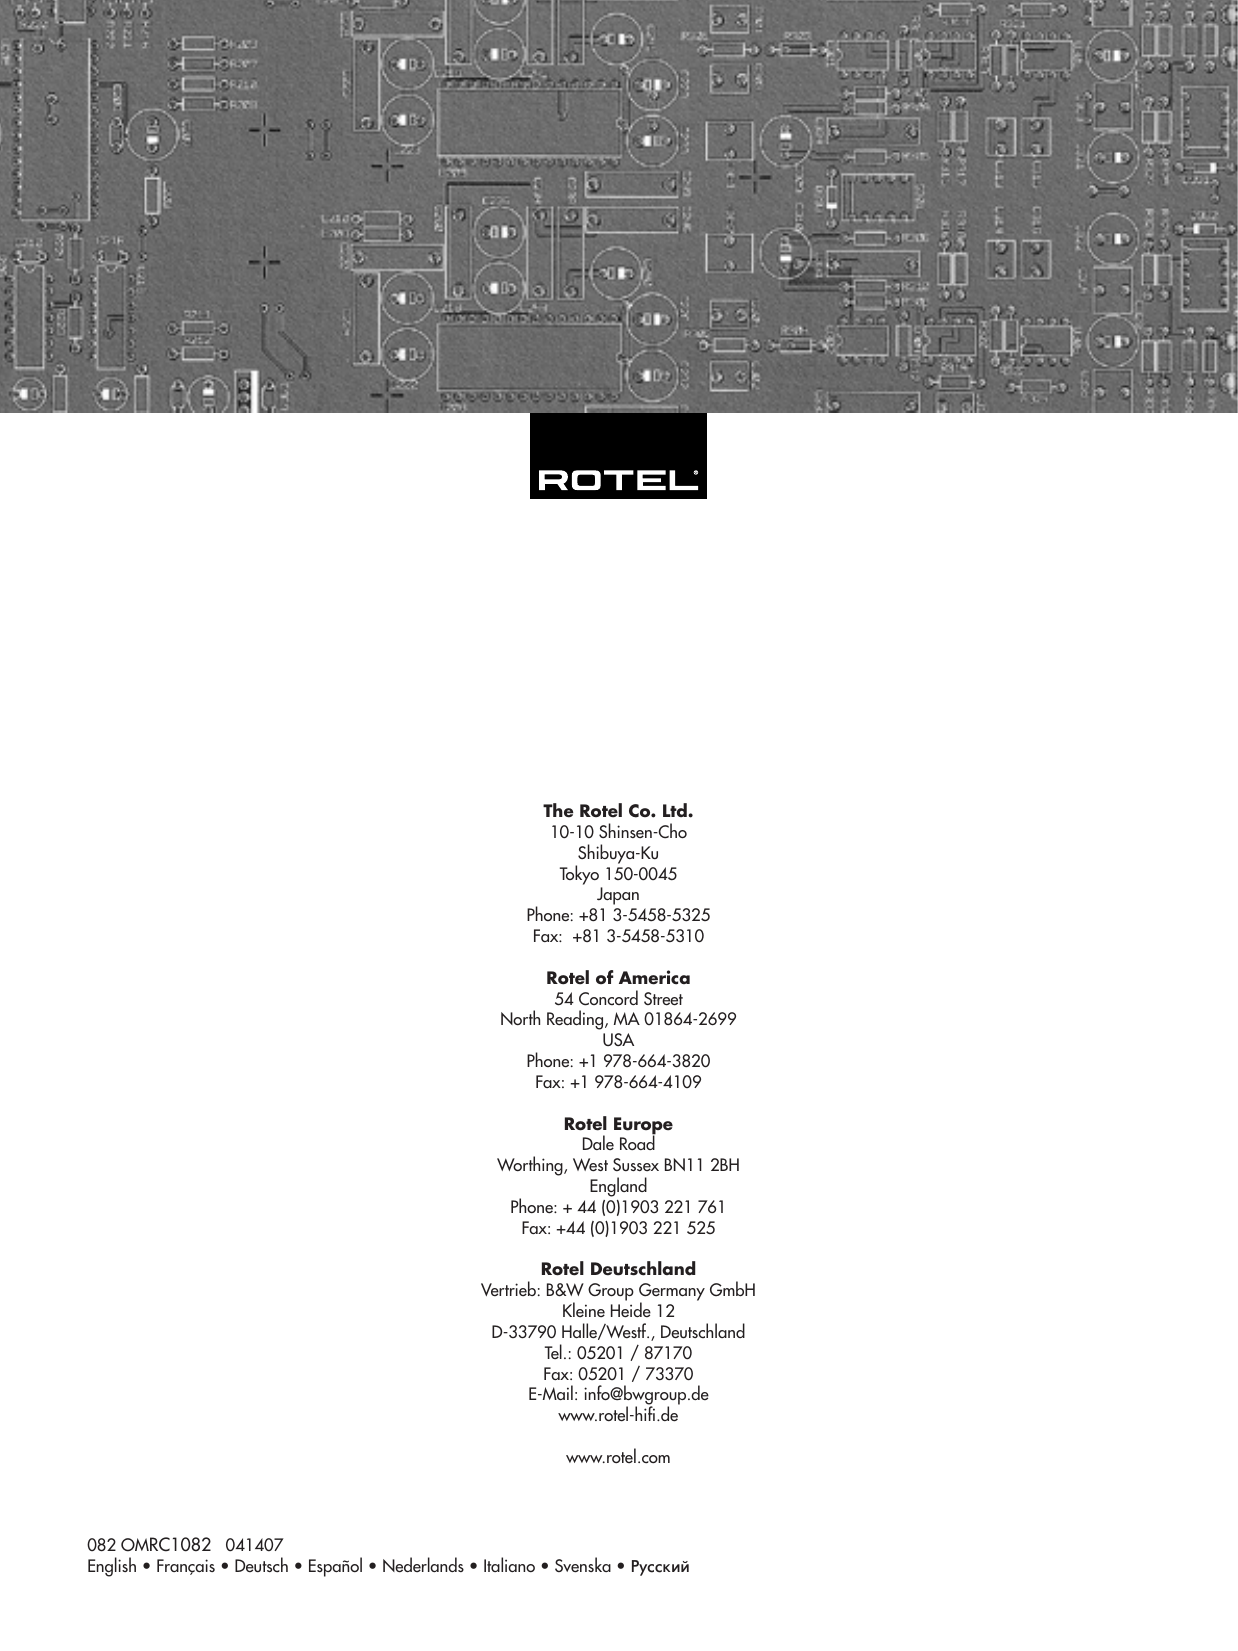 Rotel Rc 1082 Users Manual Issue 1 ML